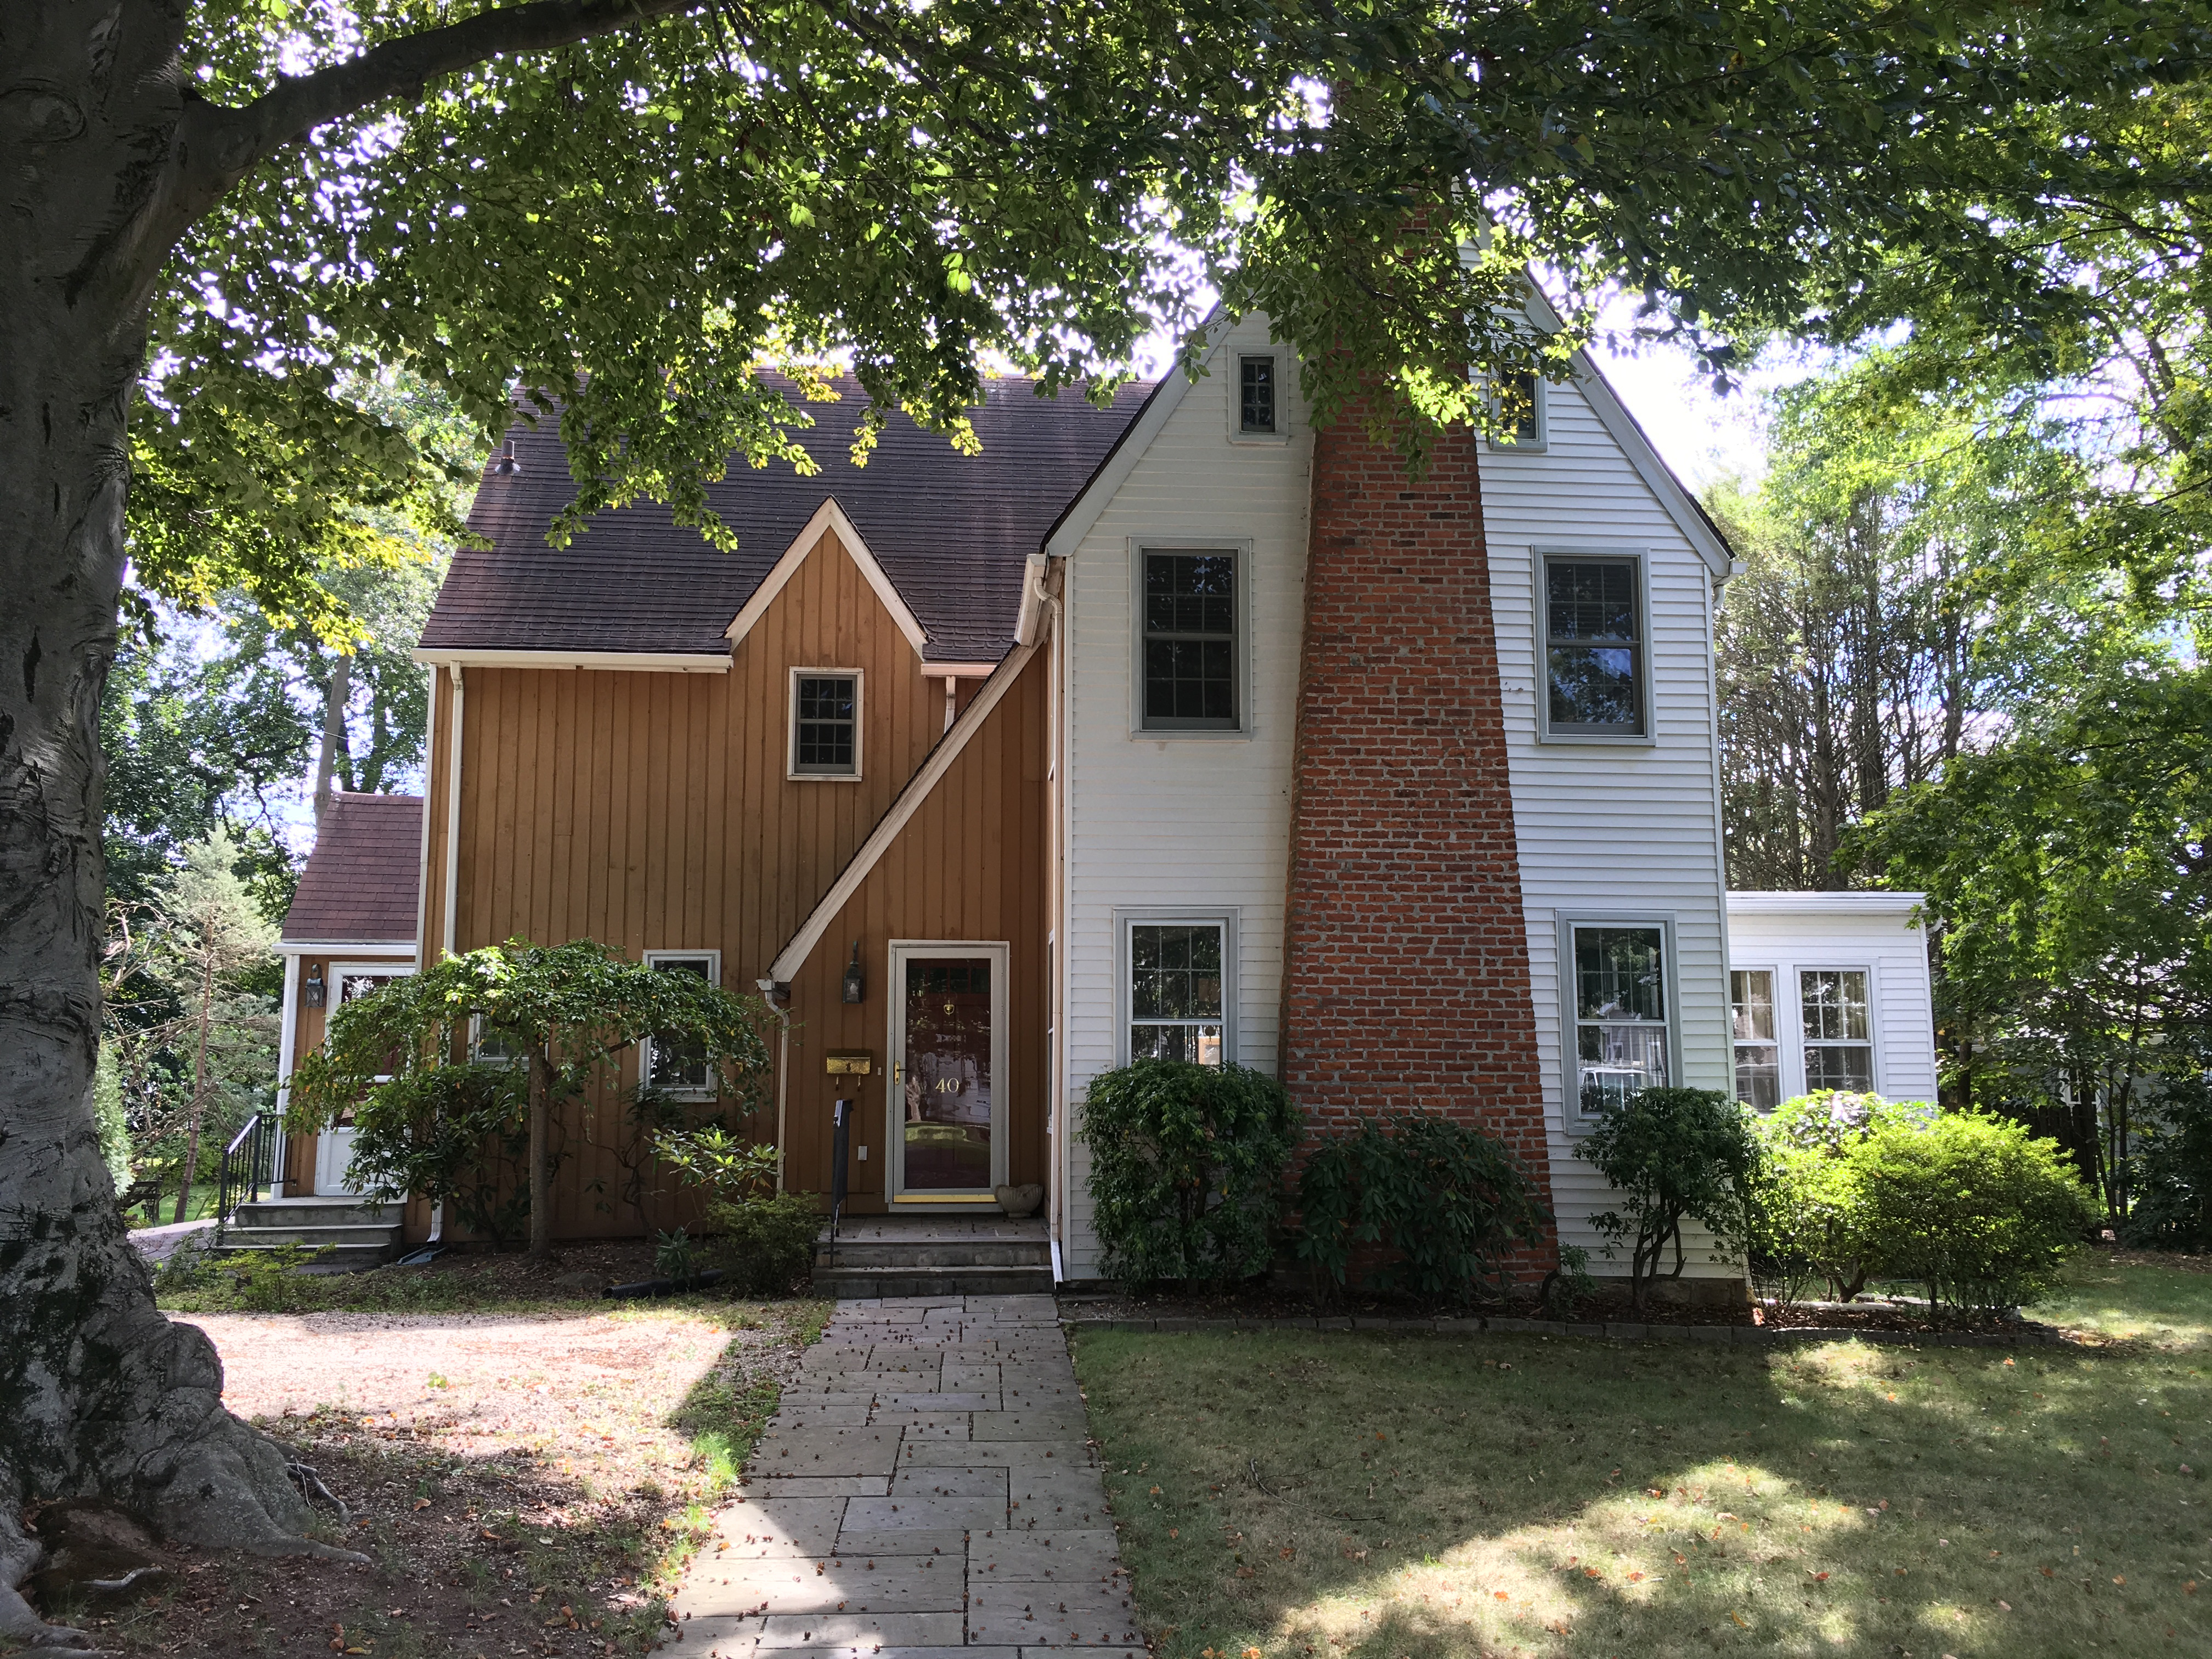 Single Family Home for Sale at Vintage Colonial 40 Ralsey Road Stamford, Connecticut, 06902 United States